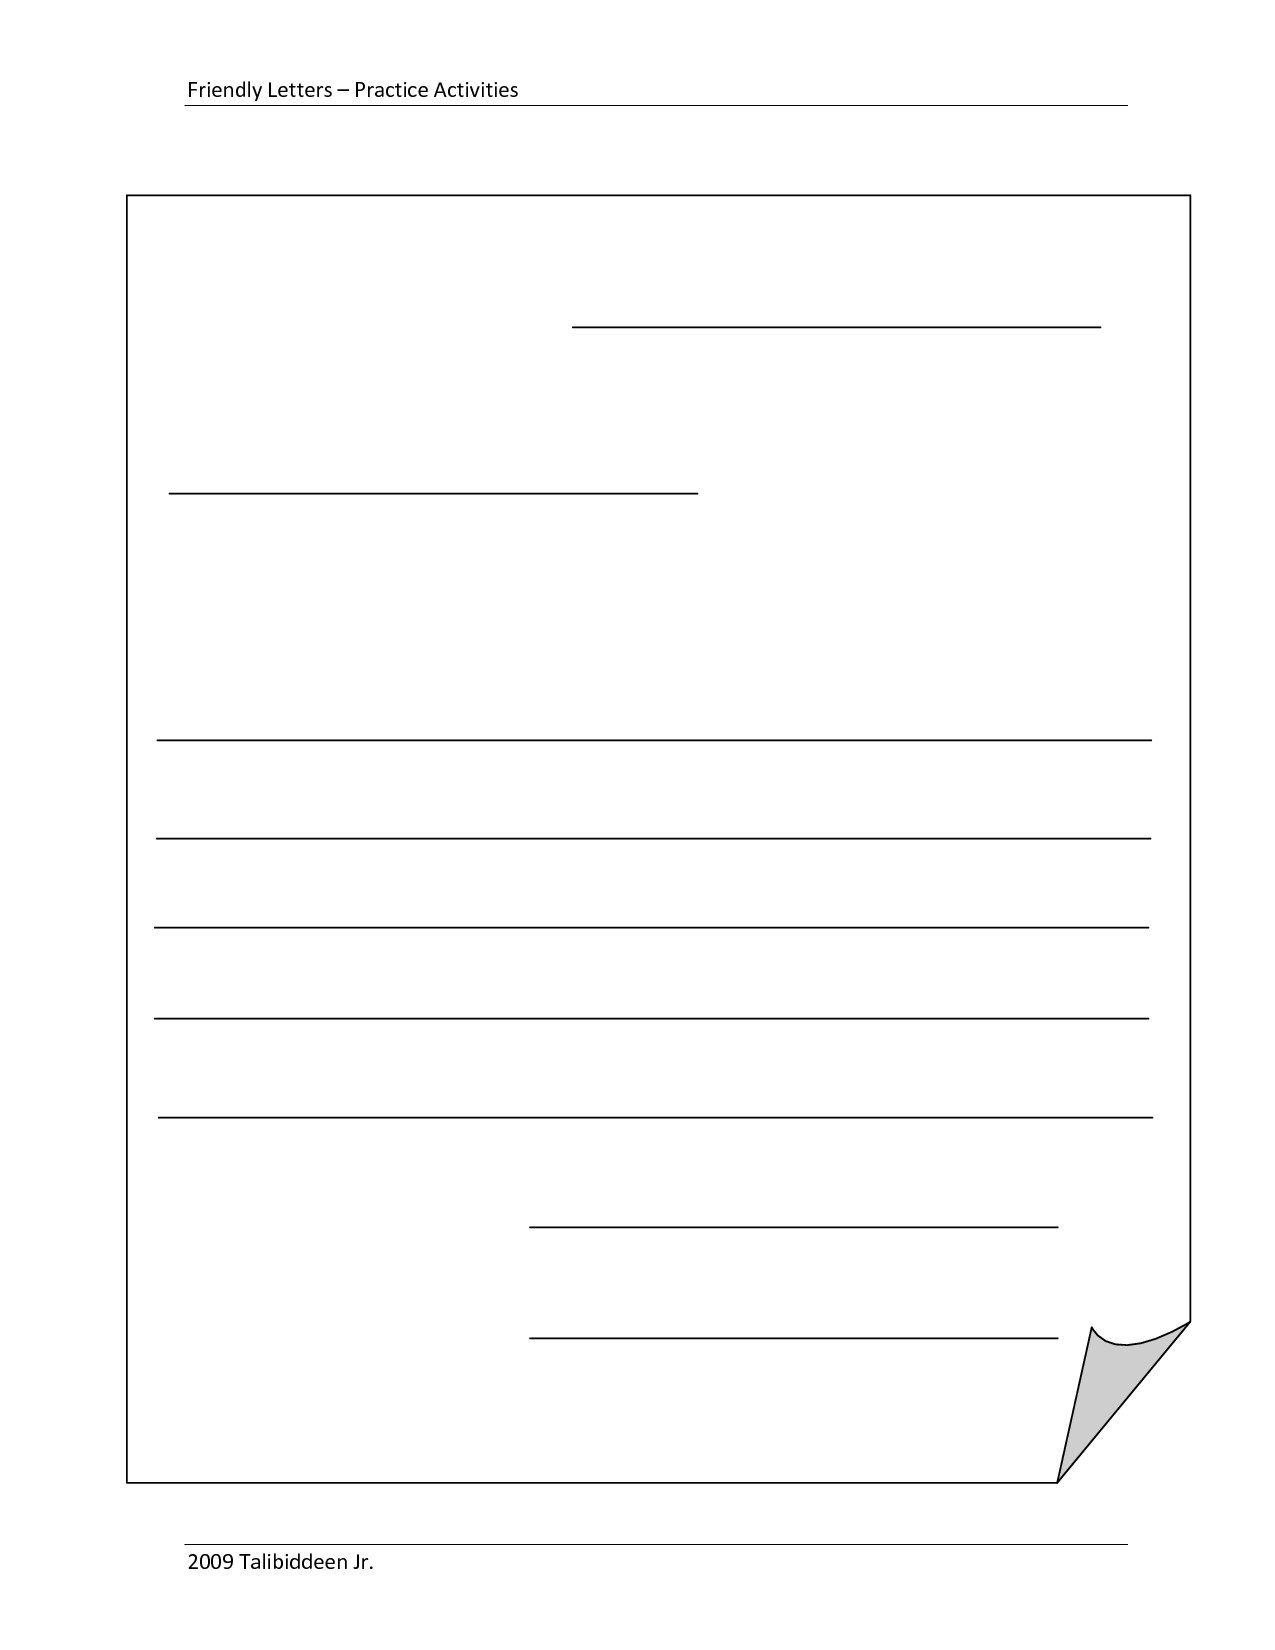 Blank letter template for kids blank template friendly letter blank letter template for kids blank template friendly letter friendly letters practice spiritdancerdesigns